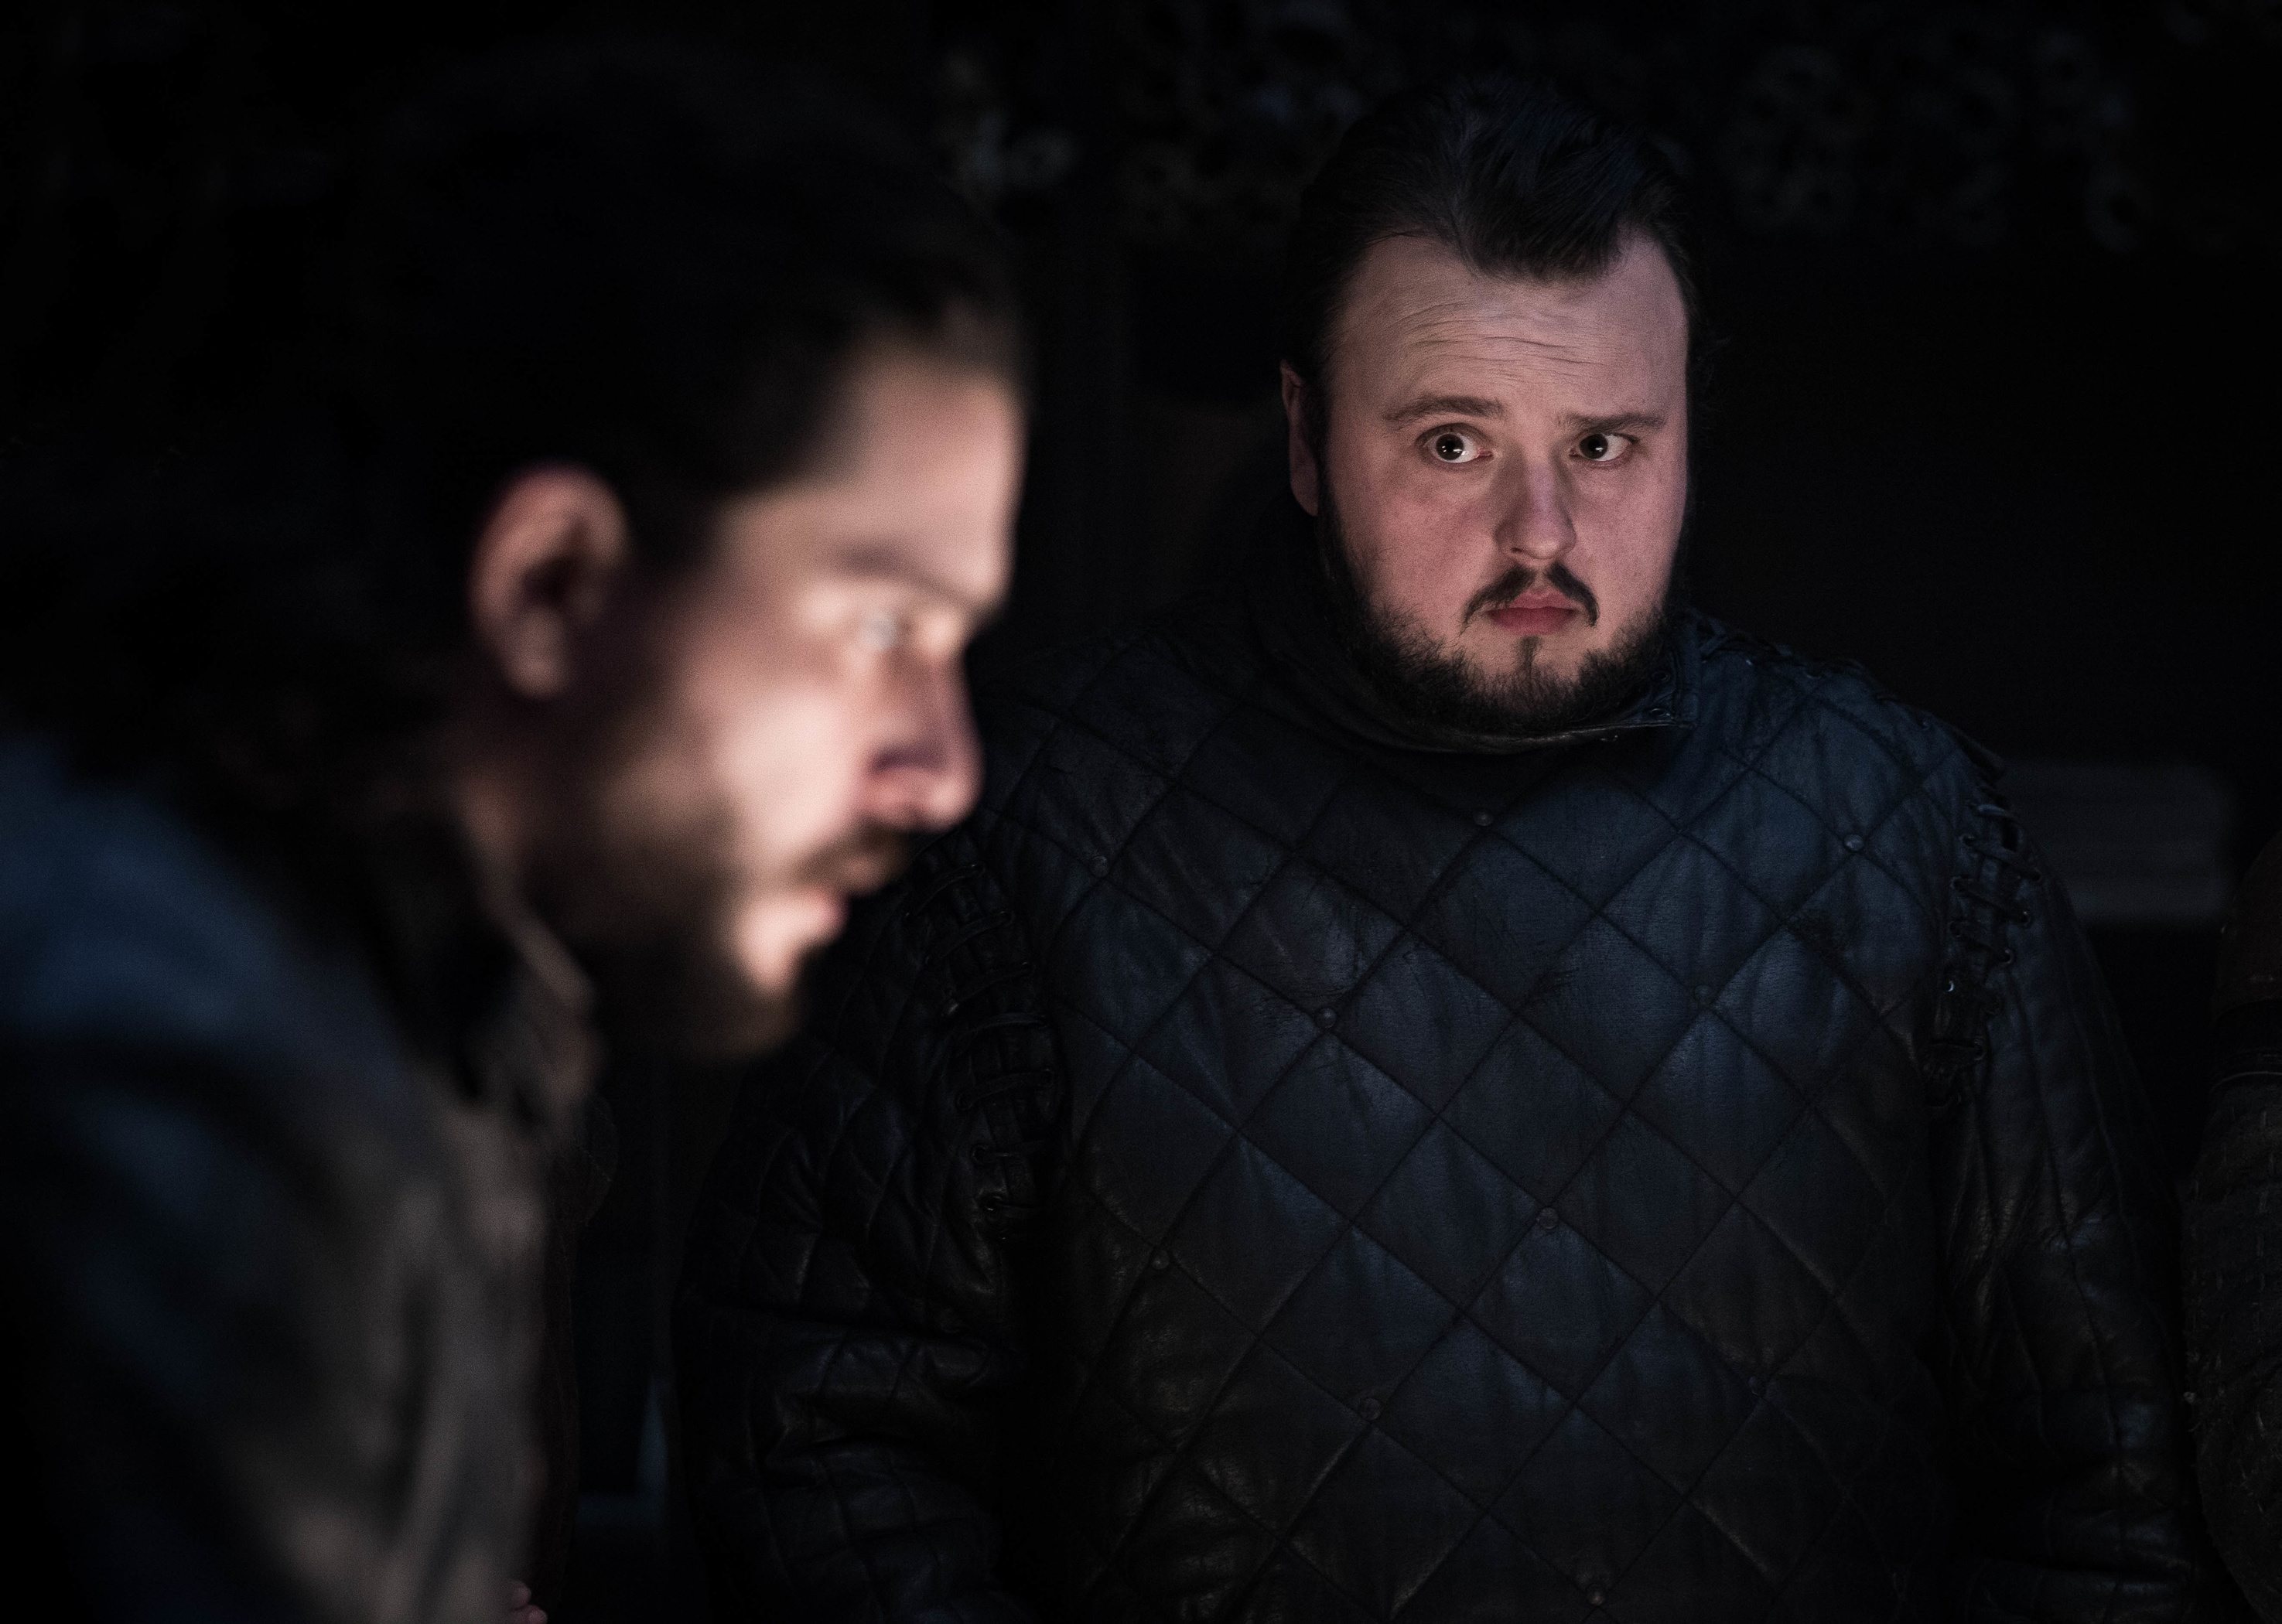 Kit Harington as Jon Snow and John Bradley as Samwell Tarly.